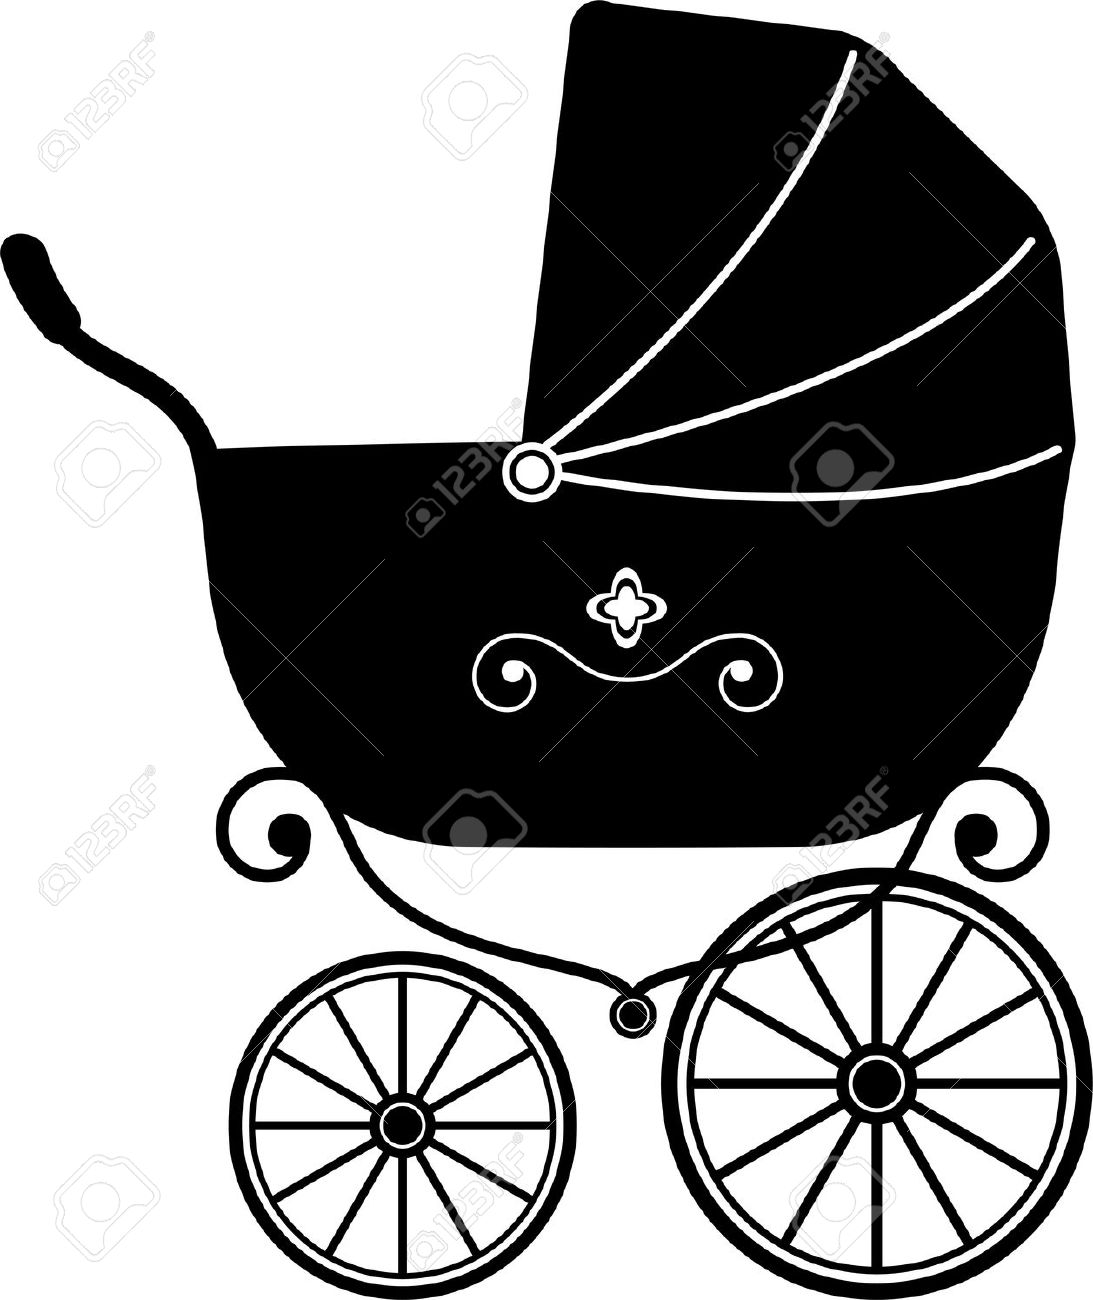 blue baby carriage clipart silhouette - Clipground